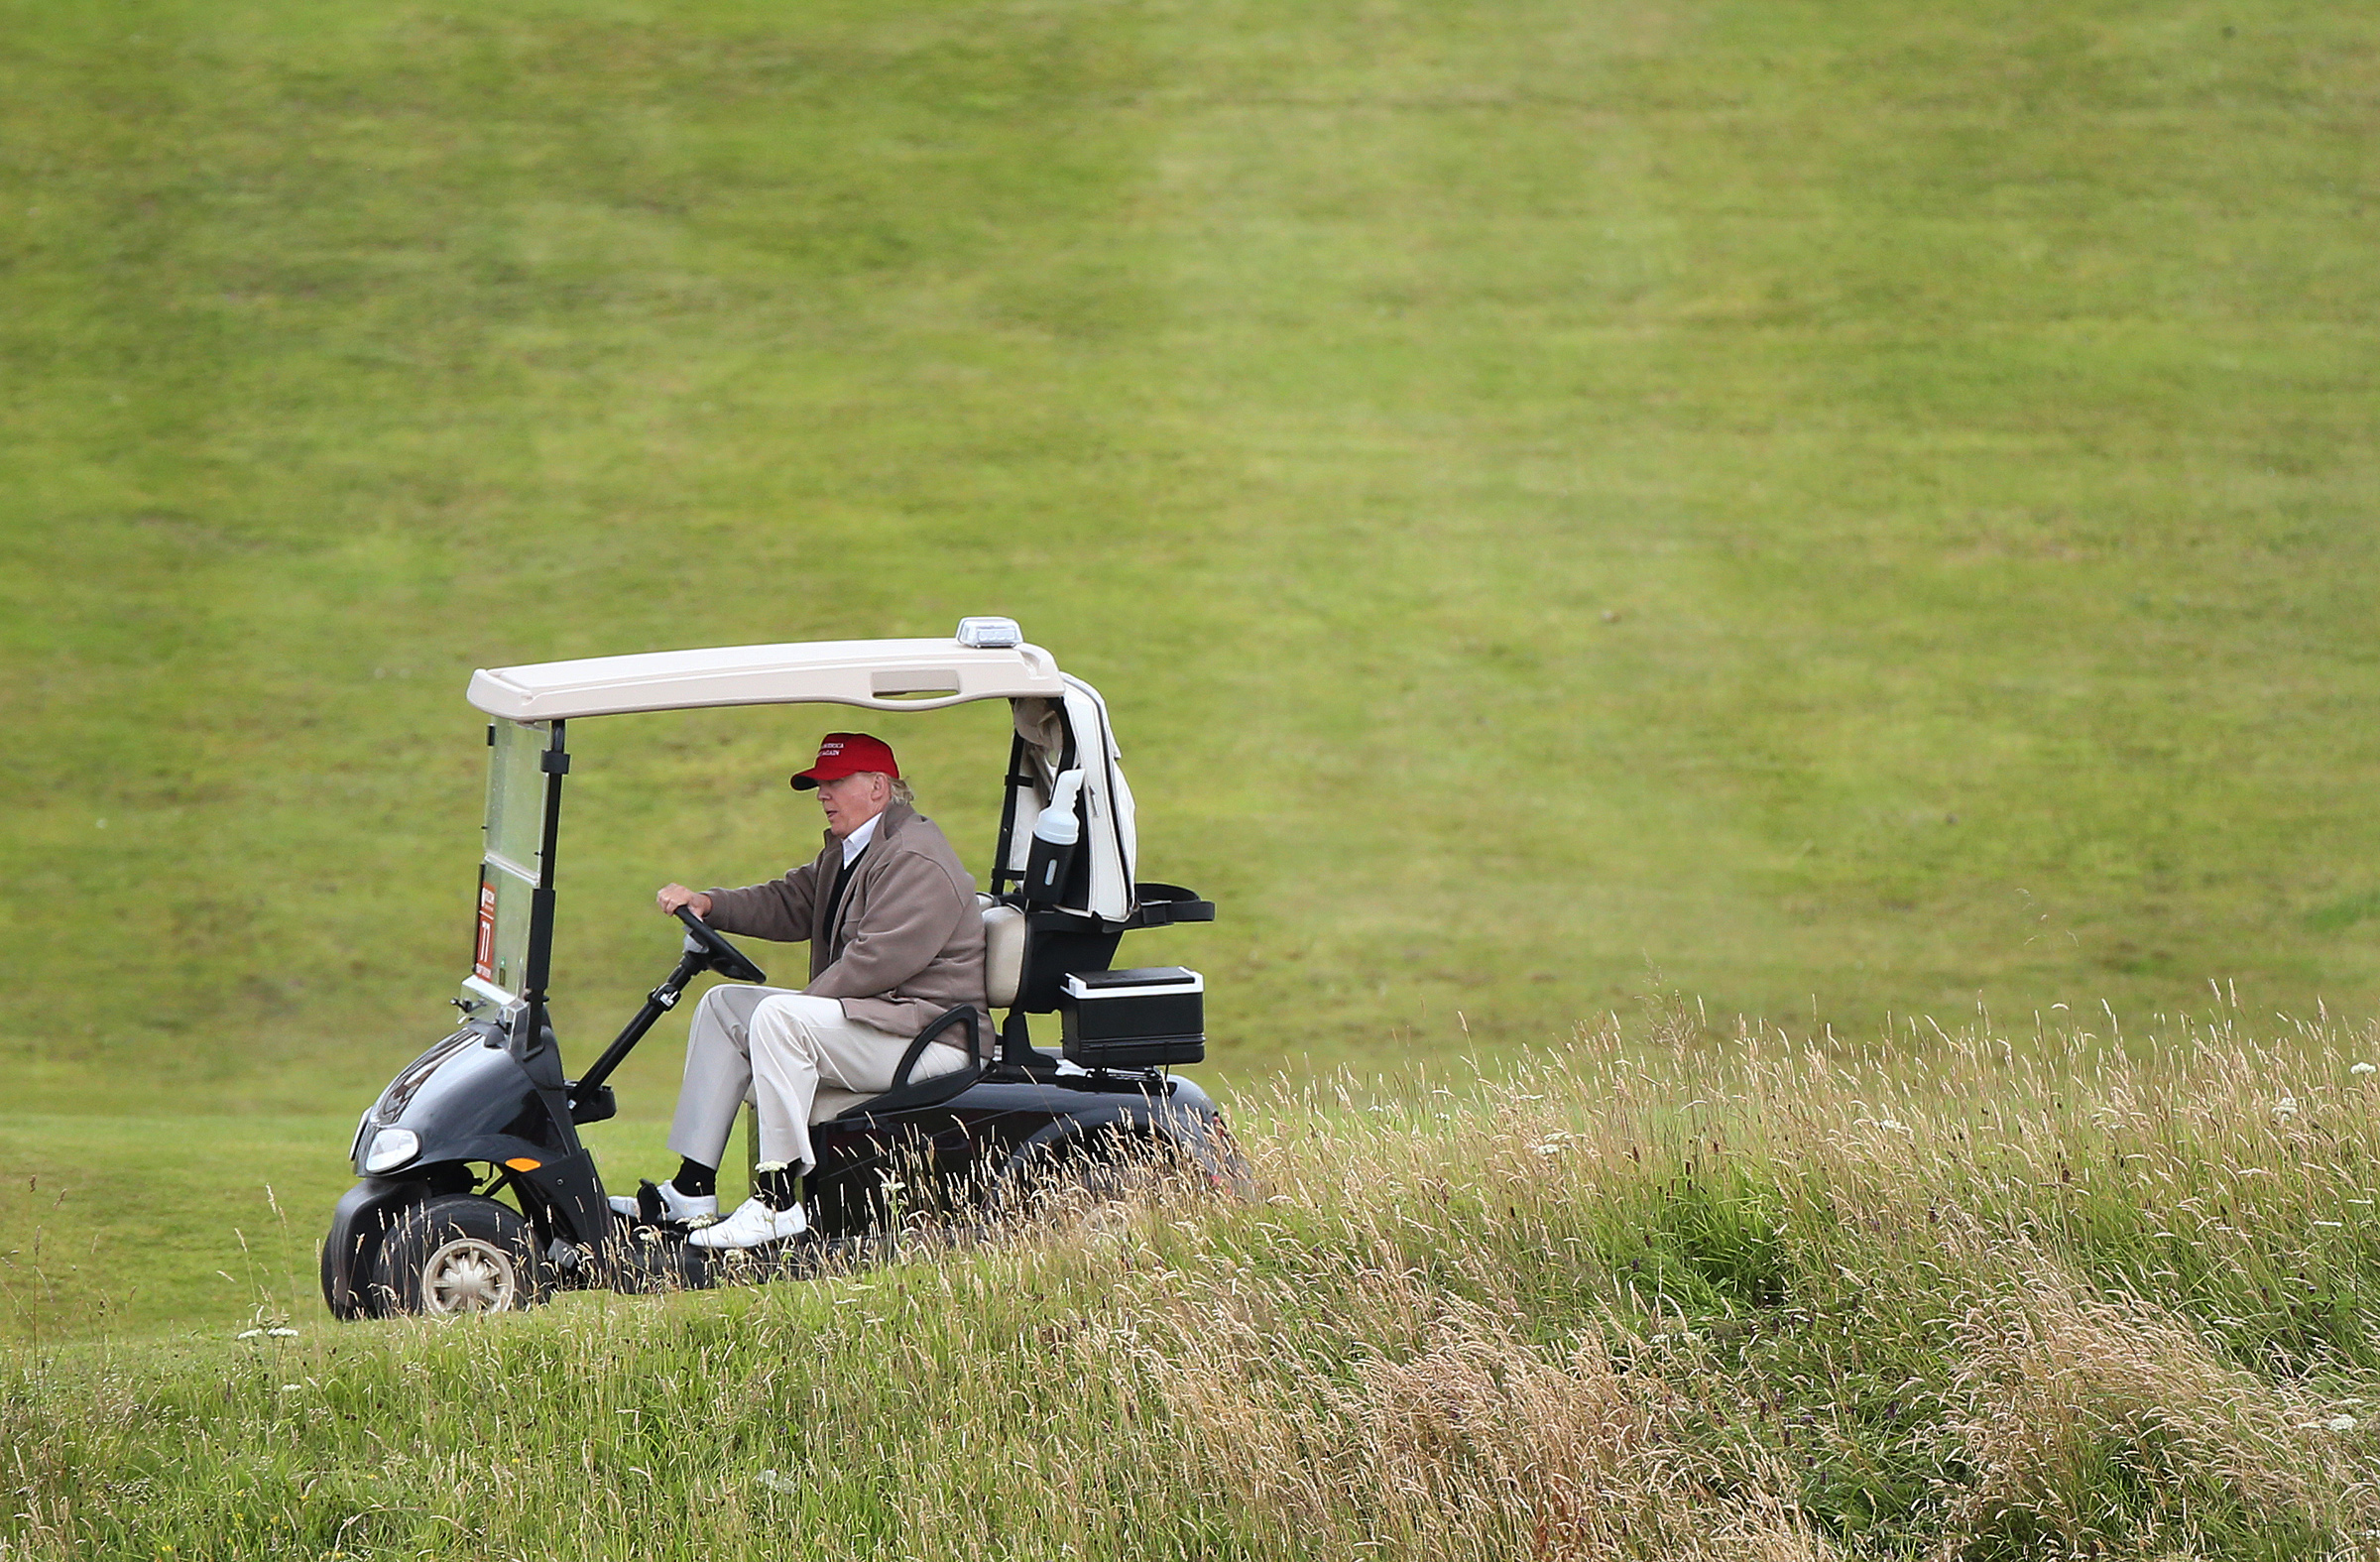 Donald Trump drives his golf buggy during the second day of the 2015 Women's British Open golf championship on the Turnberry golf course in Scotland.